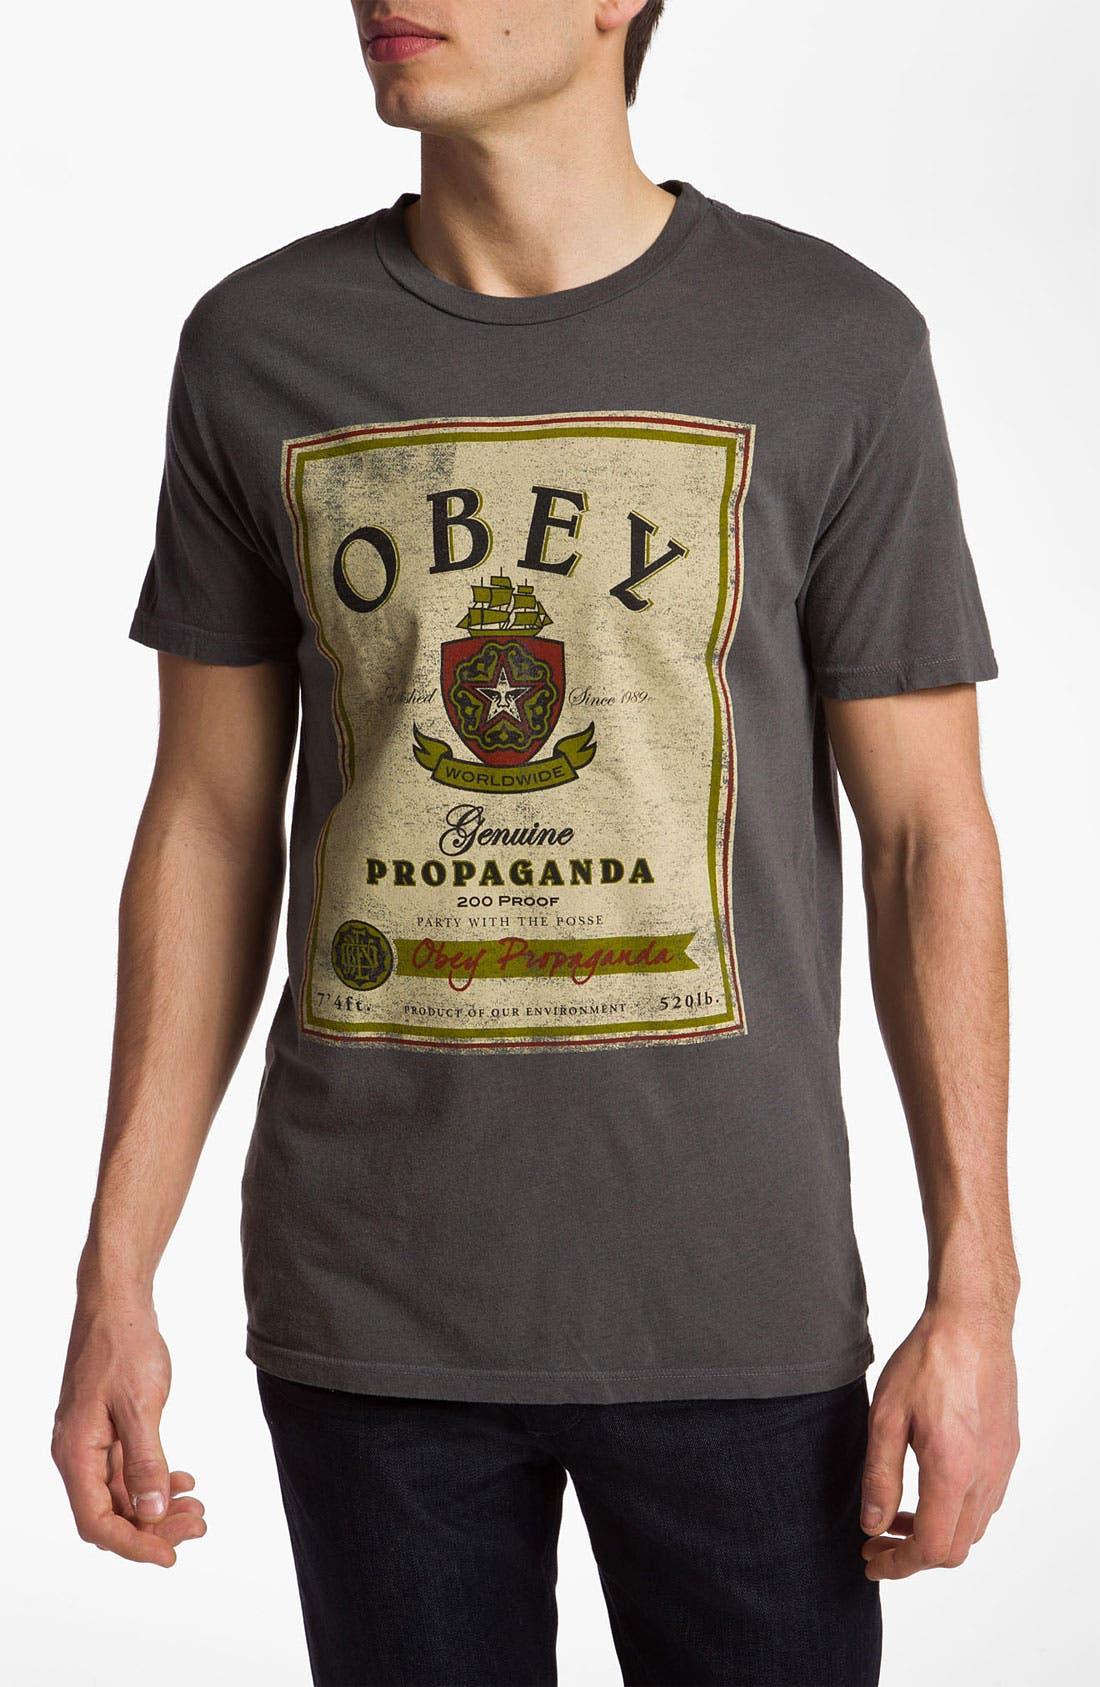 Alternate Image 1 Selected - Obey 'Whiskey Label' Graphic T-Shirt